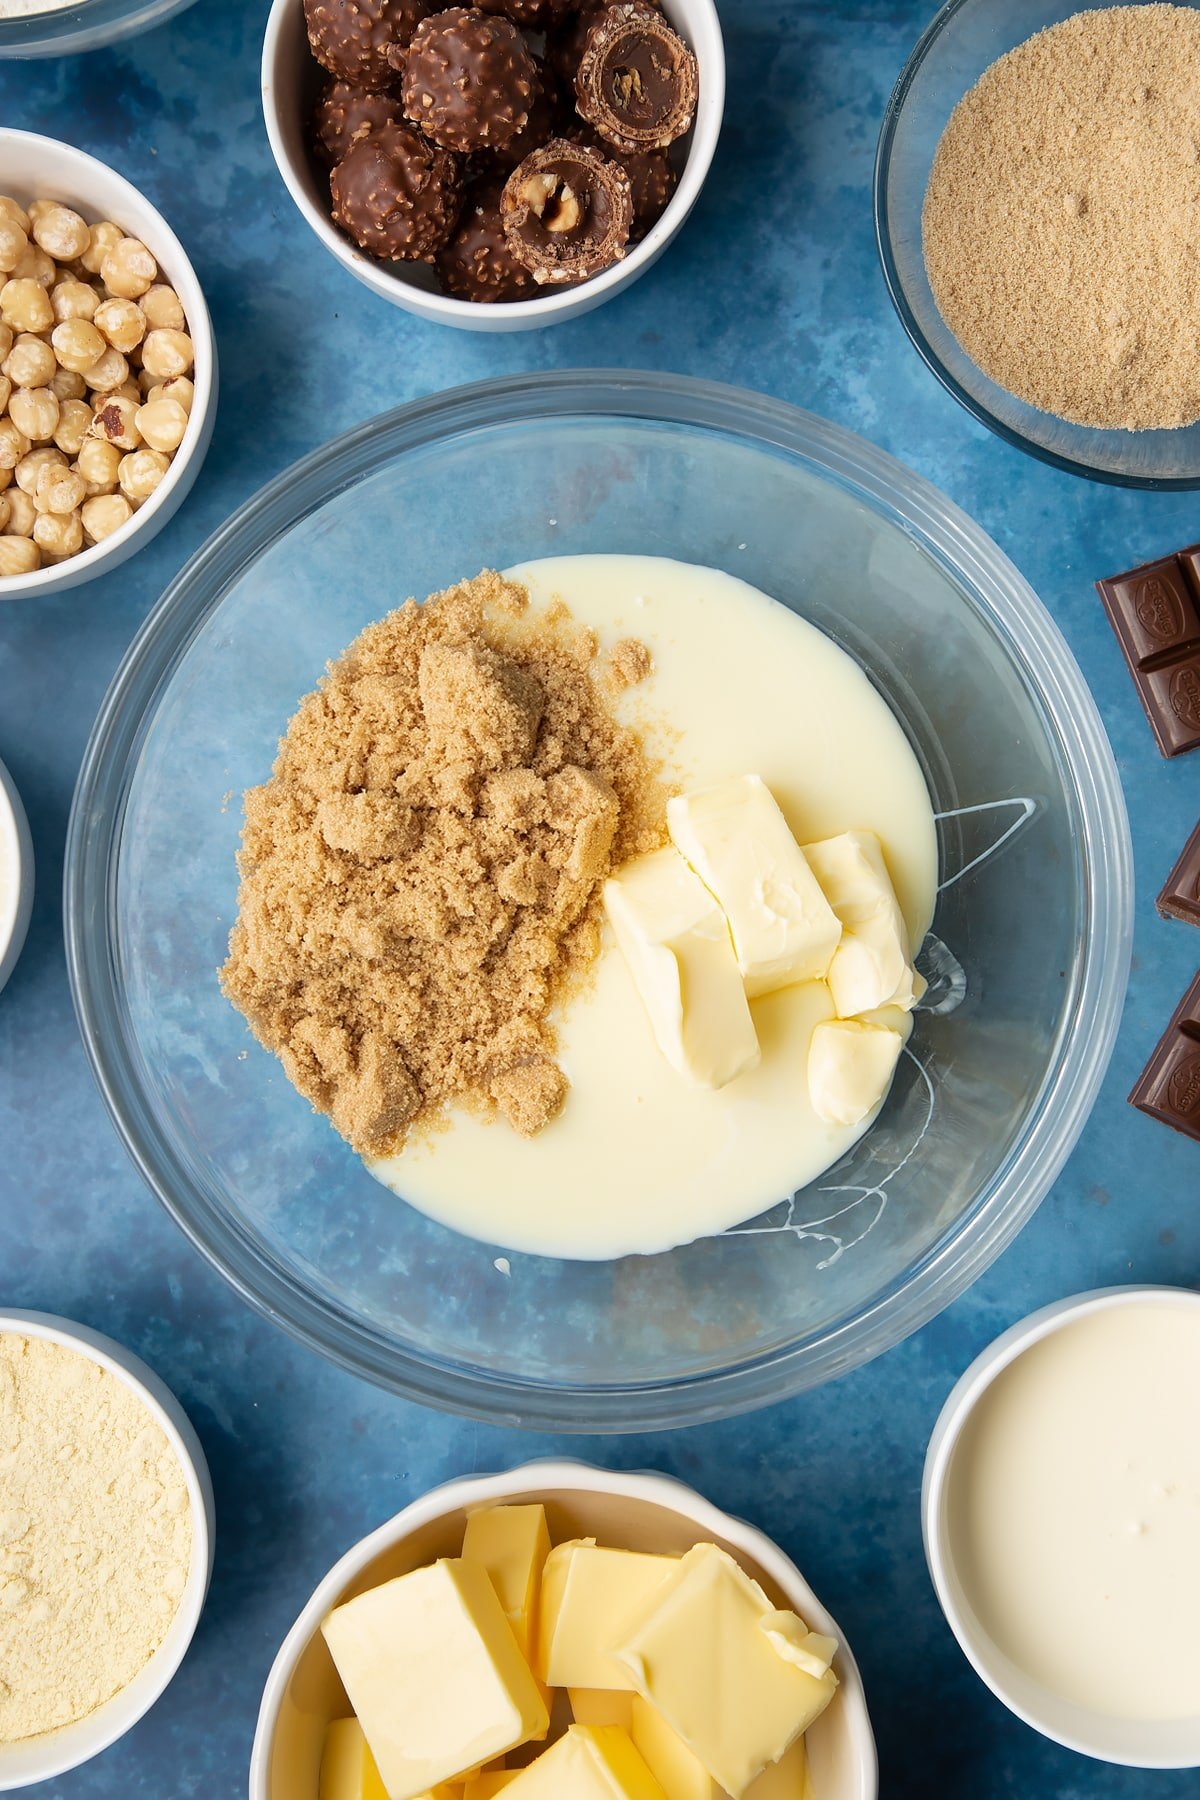 Brown sugar, butter and condensed milk in a glass mixing bowl. Ingredients to make a Ferrero Rocher slice surround the bowl.